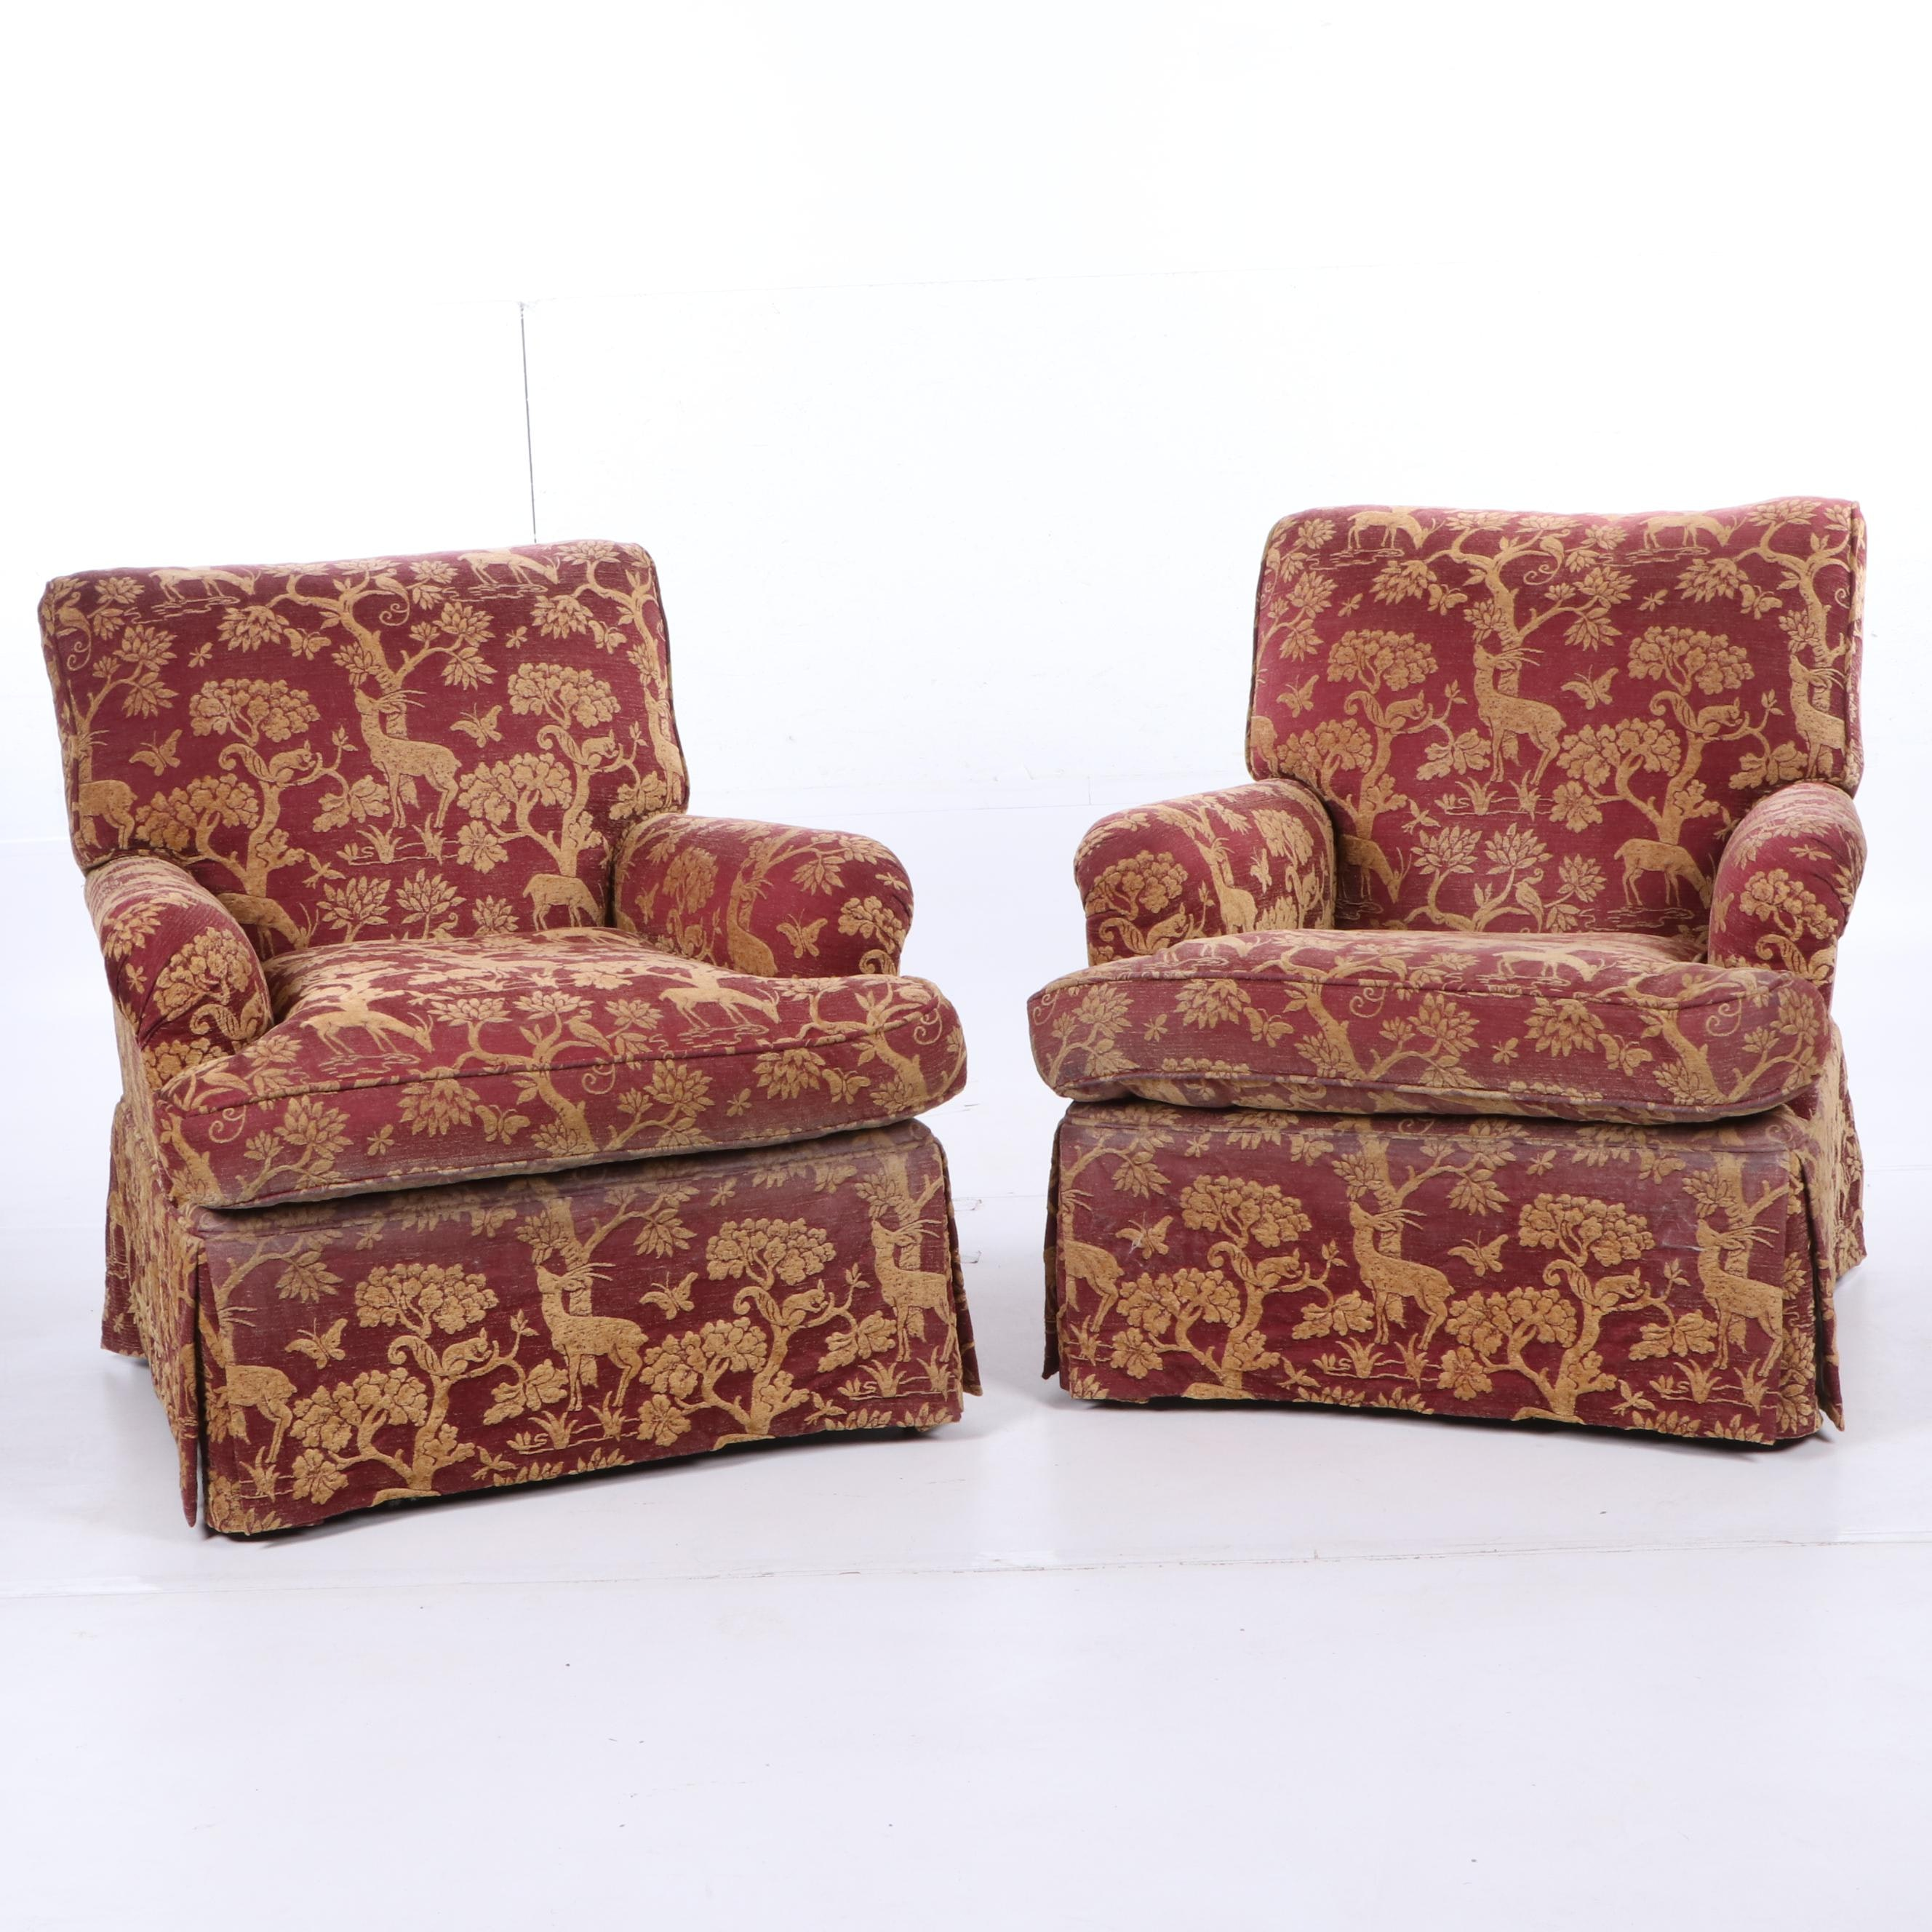 Upholstered Armchairs, Late 20th Century